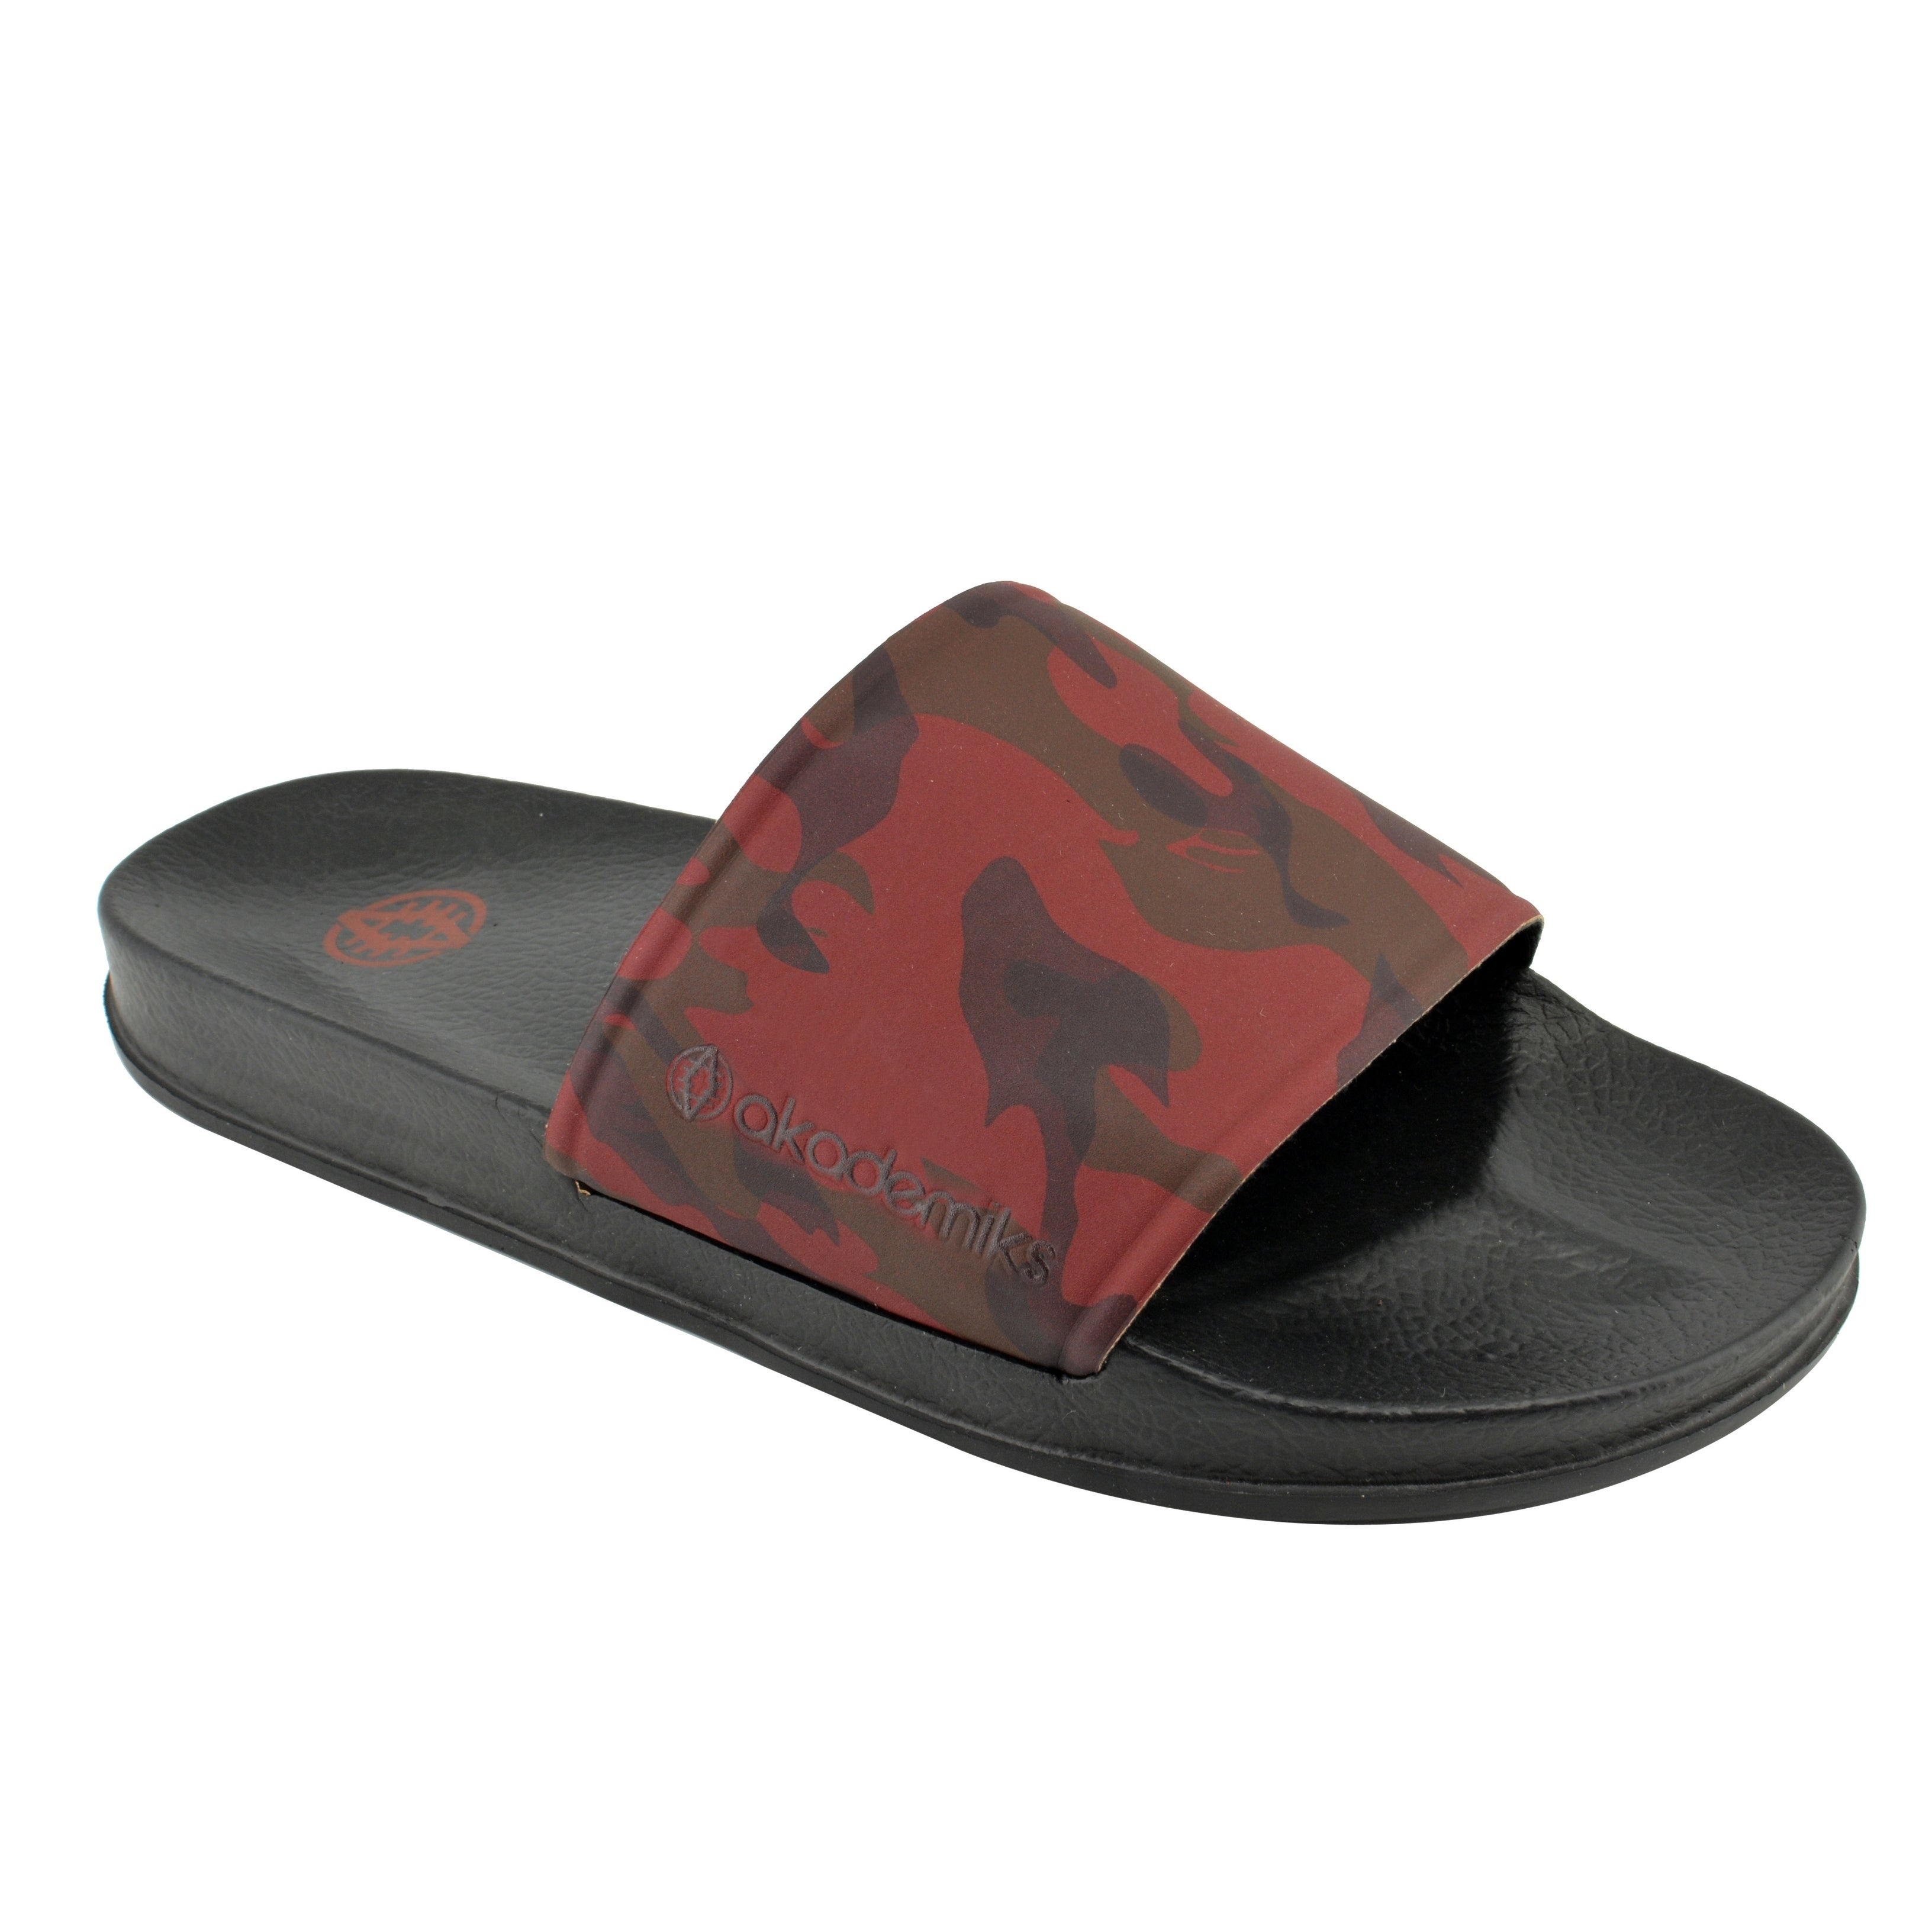 ddee3189c9f8 Shop Akademiks Slides Camouflage Fashion Sandals for Men for Beach ...